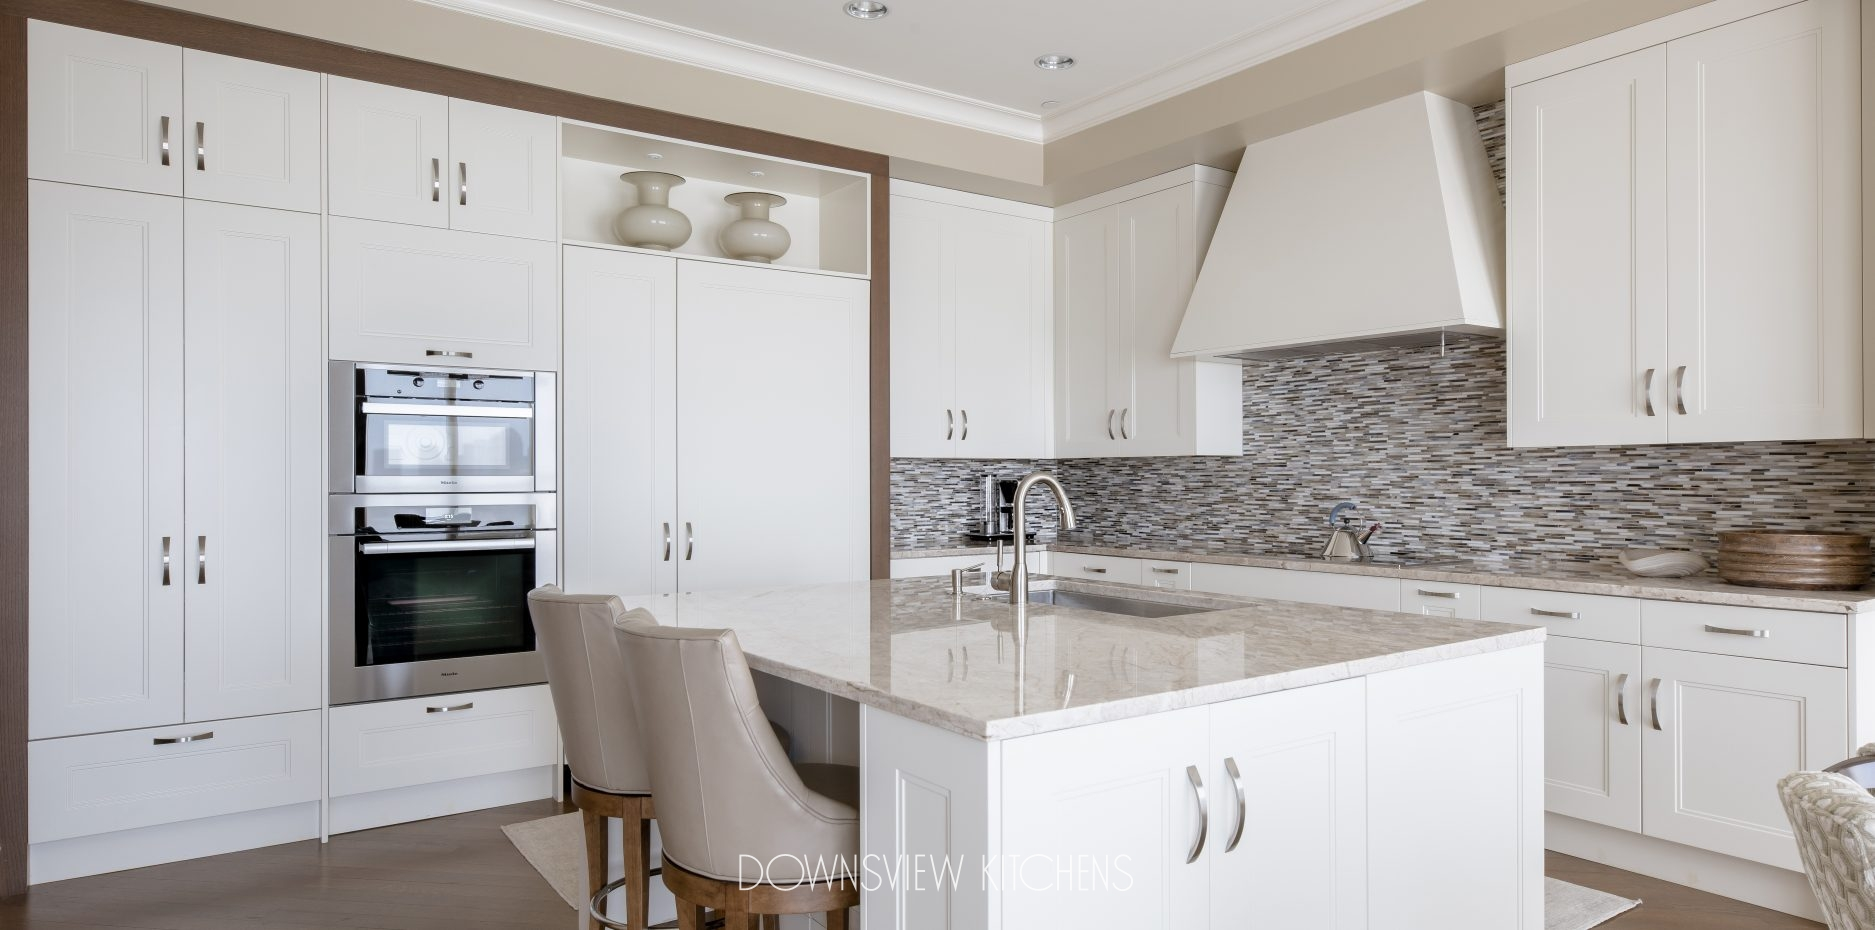 FAMILY RECIPE Downsview Kitchens And Fine Custom Cabinetry - Downsview kitchens